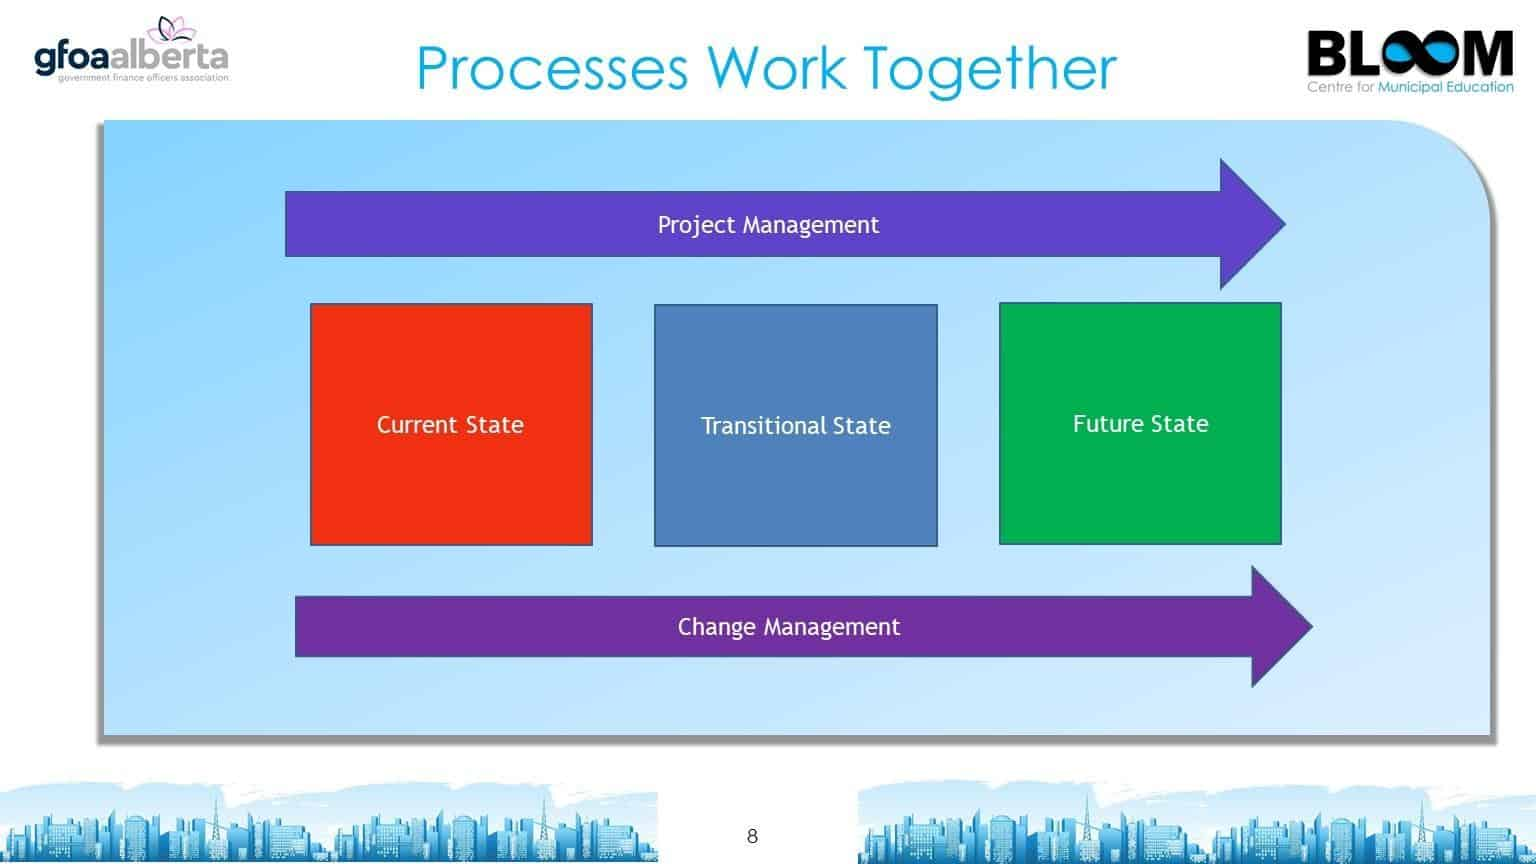 Processes work together